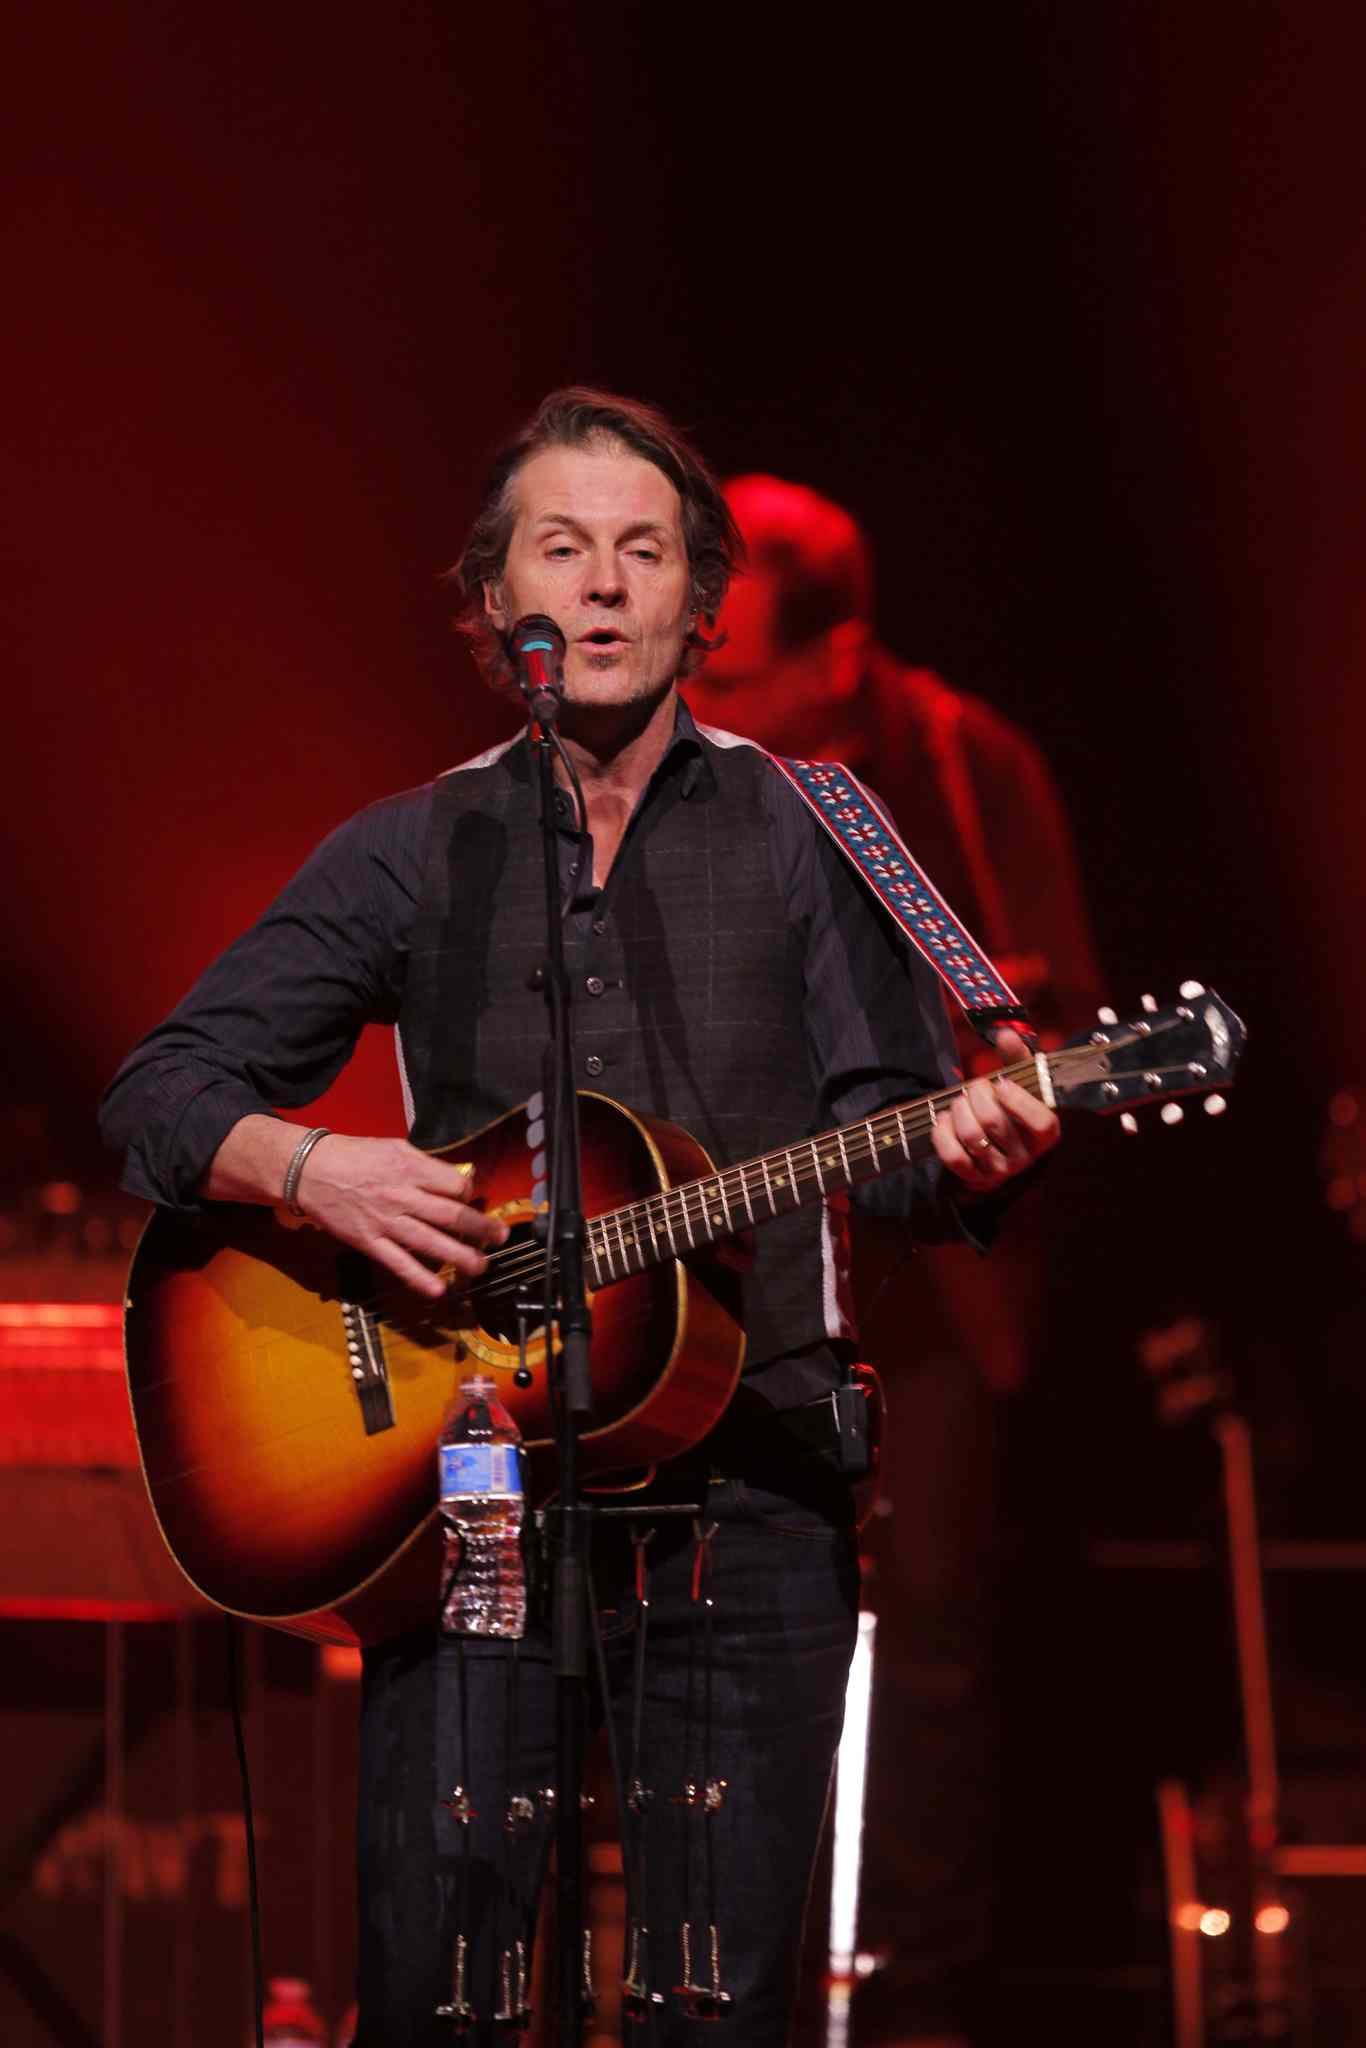 Blue Rodeo singer Jim Cuddy had his son Devin Cuddy and the Devin Cuddy Band (not pictured) warm up the audience during Thursday's performance at the MTS Centre in Winnipeg.